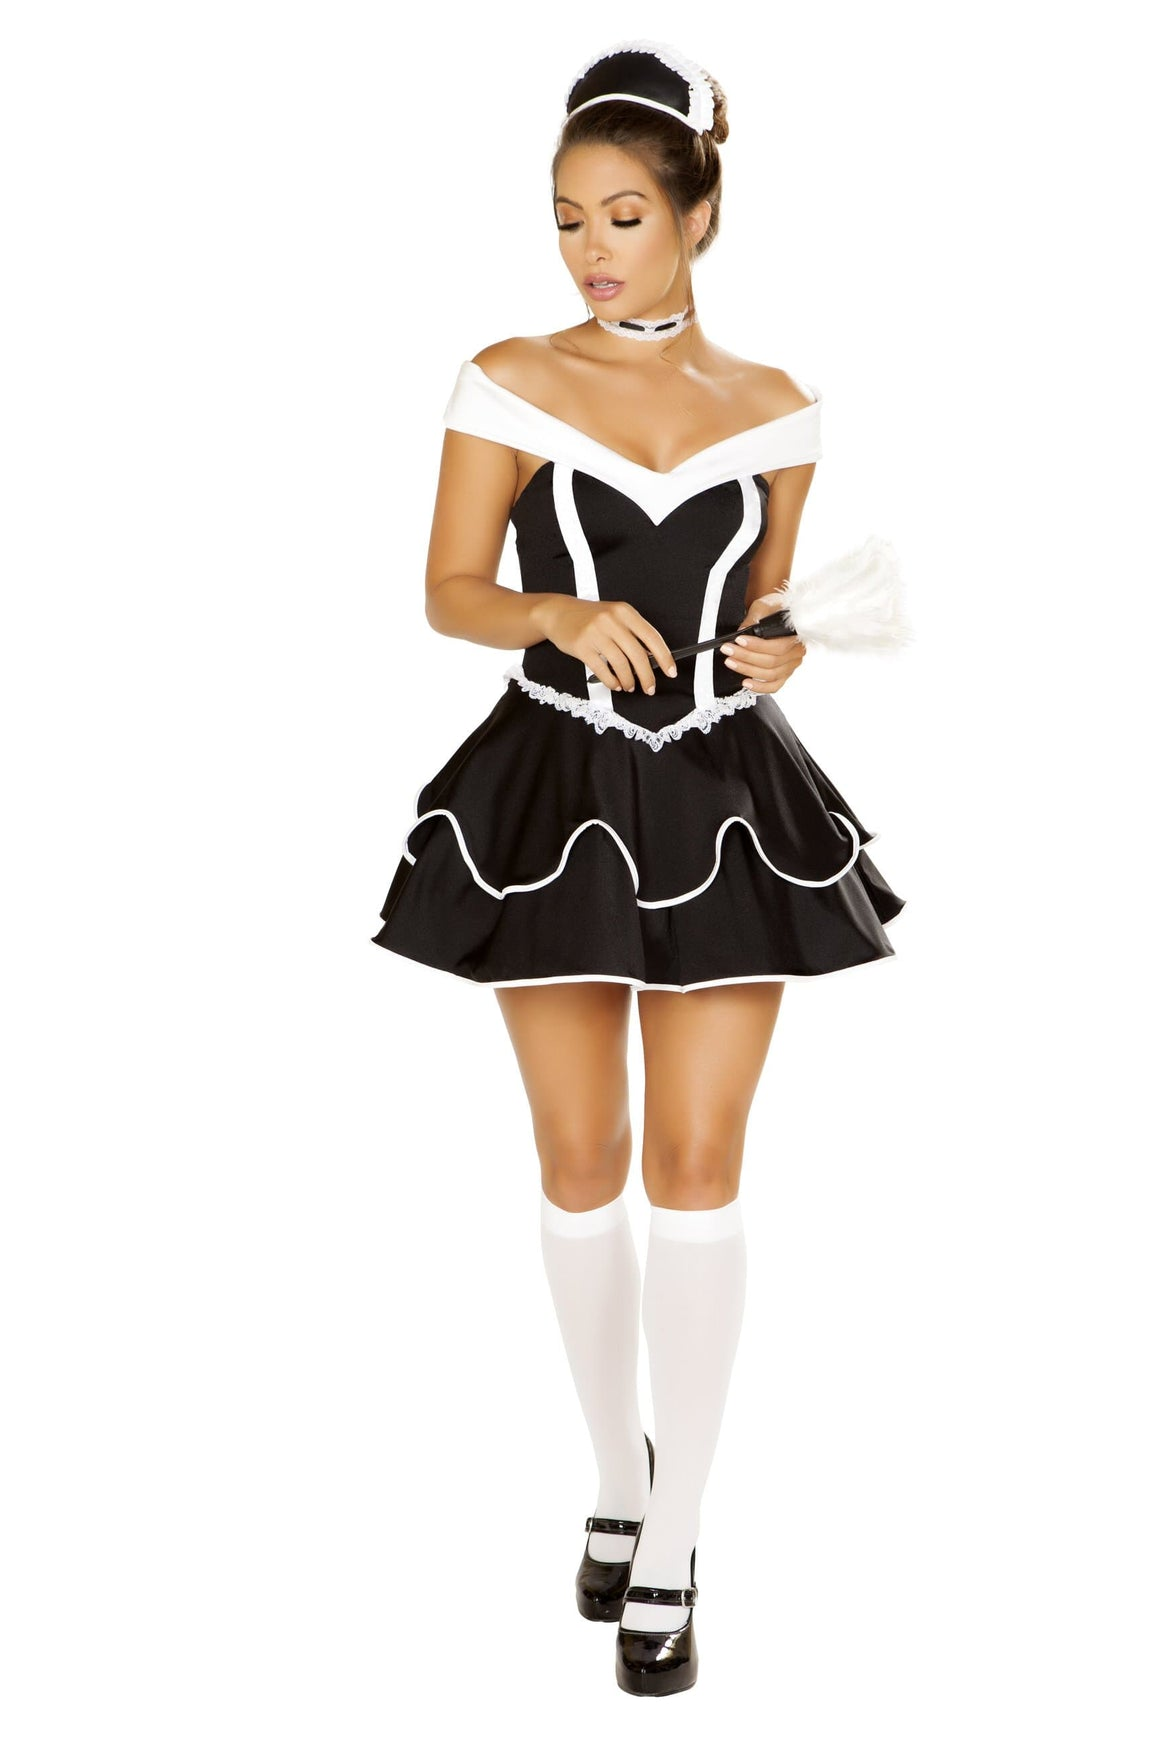 Roma Small / Black 4pc Sexy Chamber Maid SHC-4886-S-R Apparel & Accessories > Costumes & Accessories > Costumes